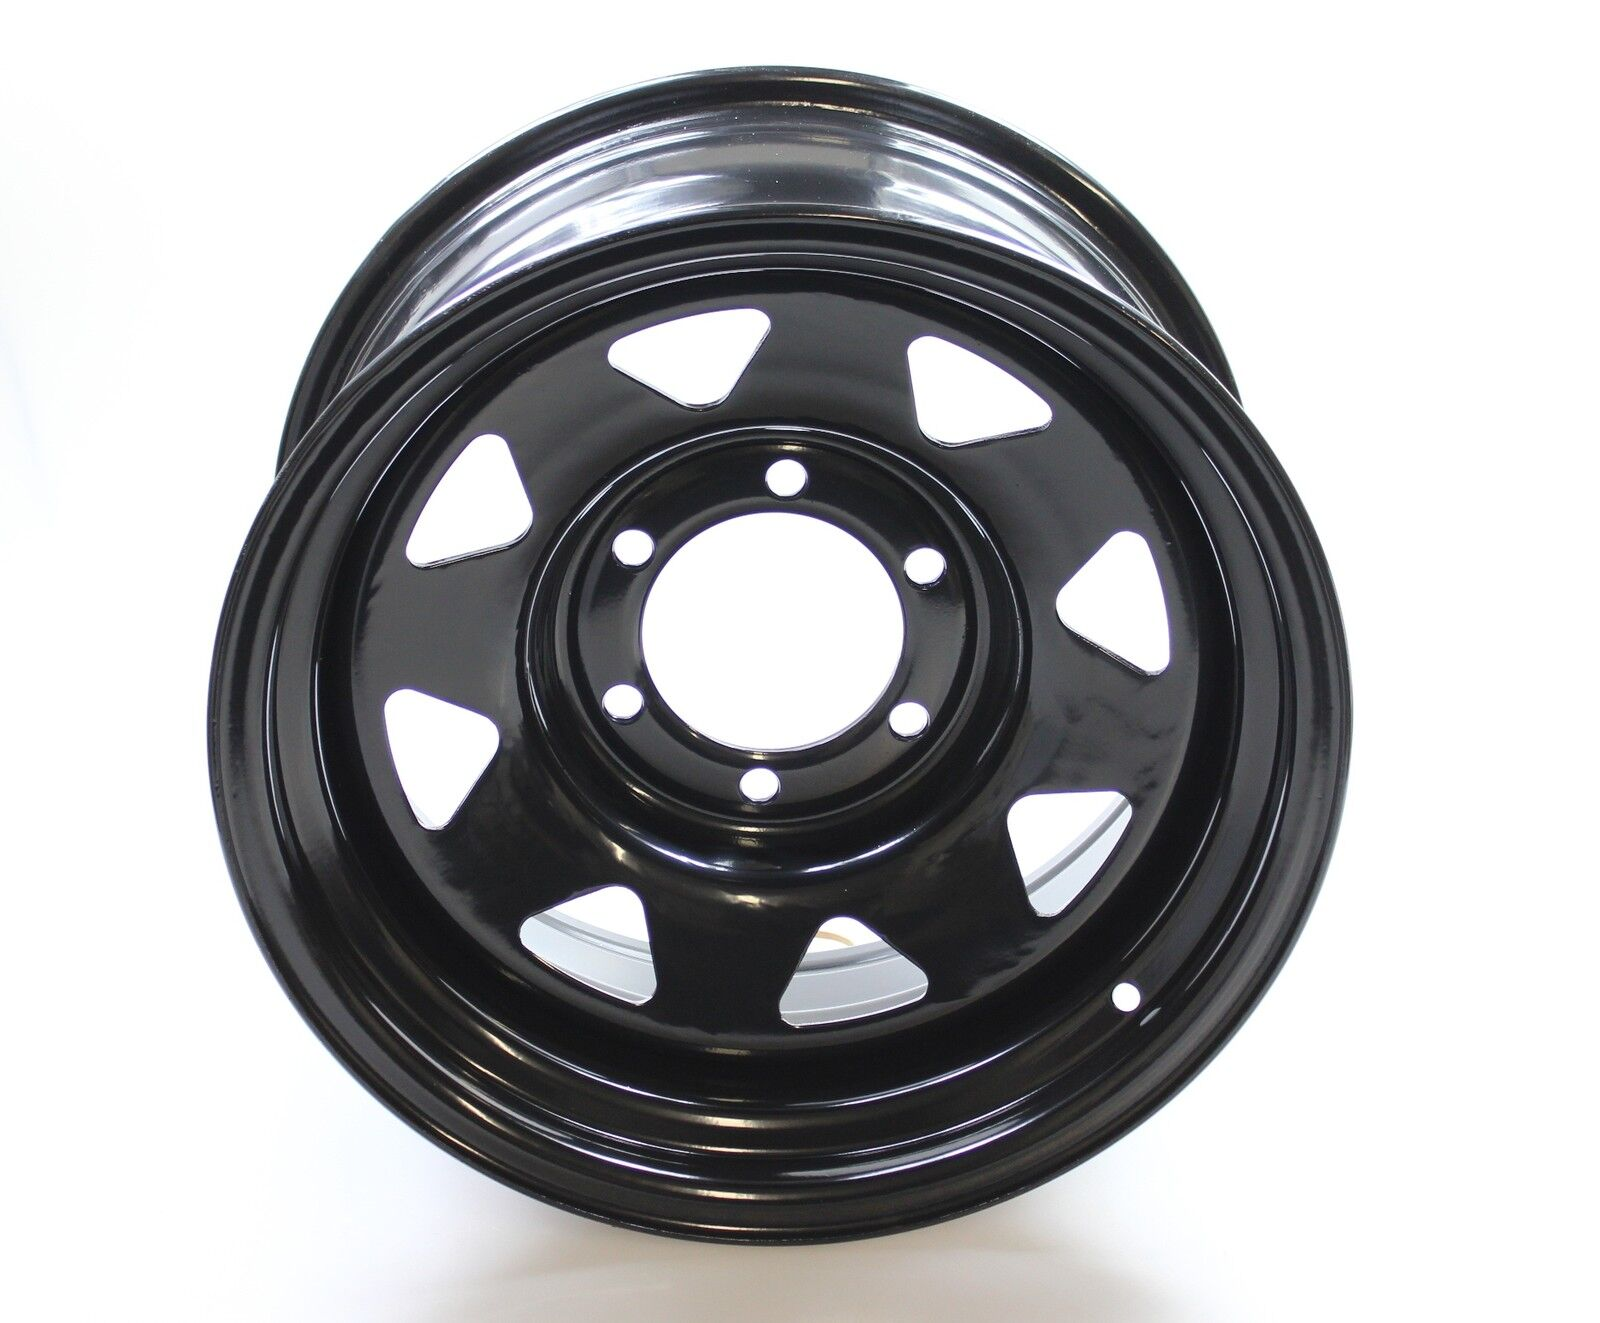 Suzuki Jimny Wheel Offset